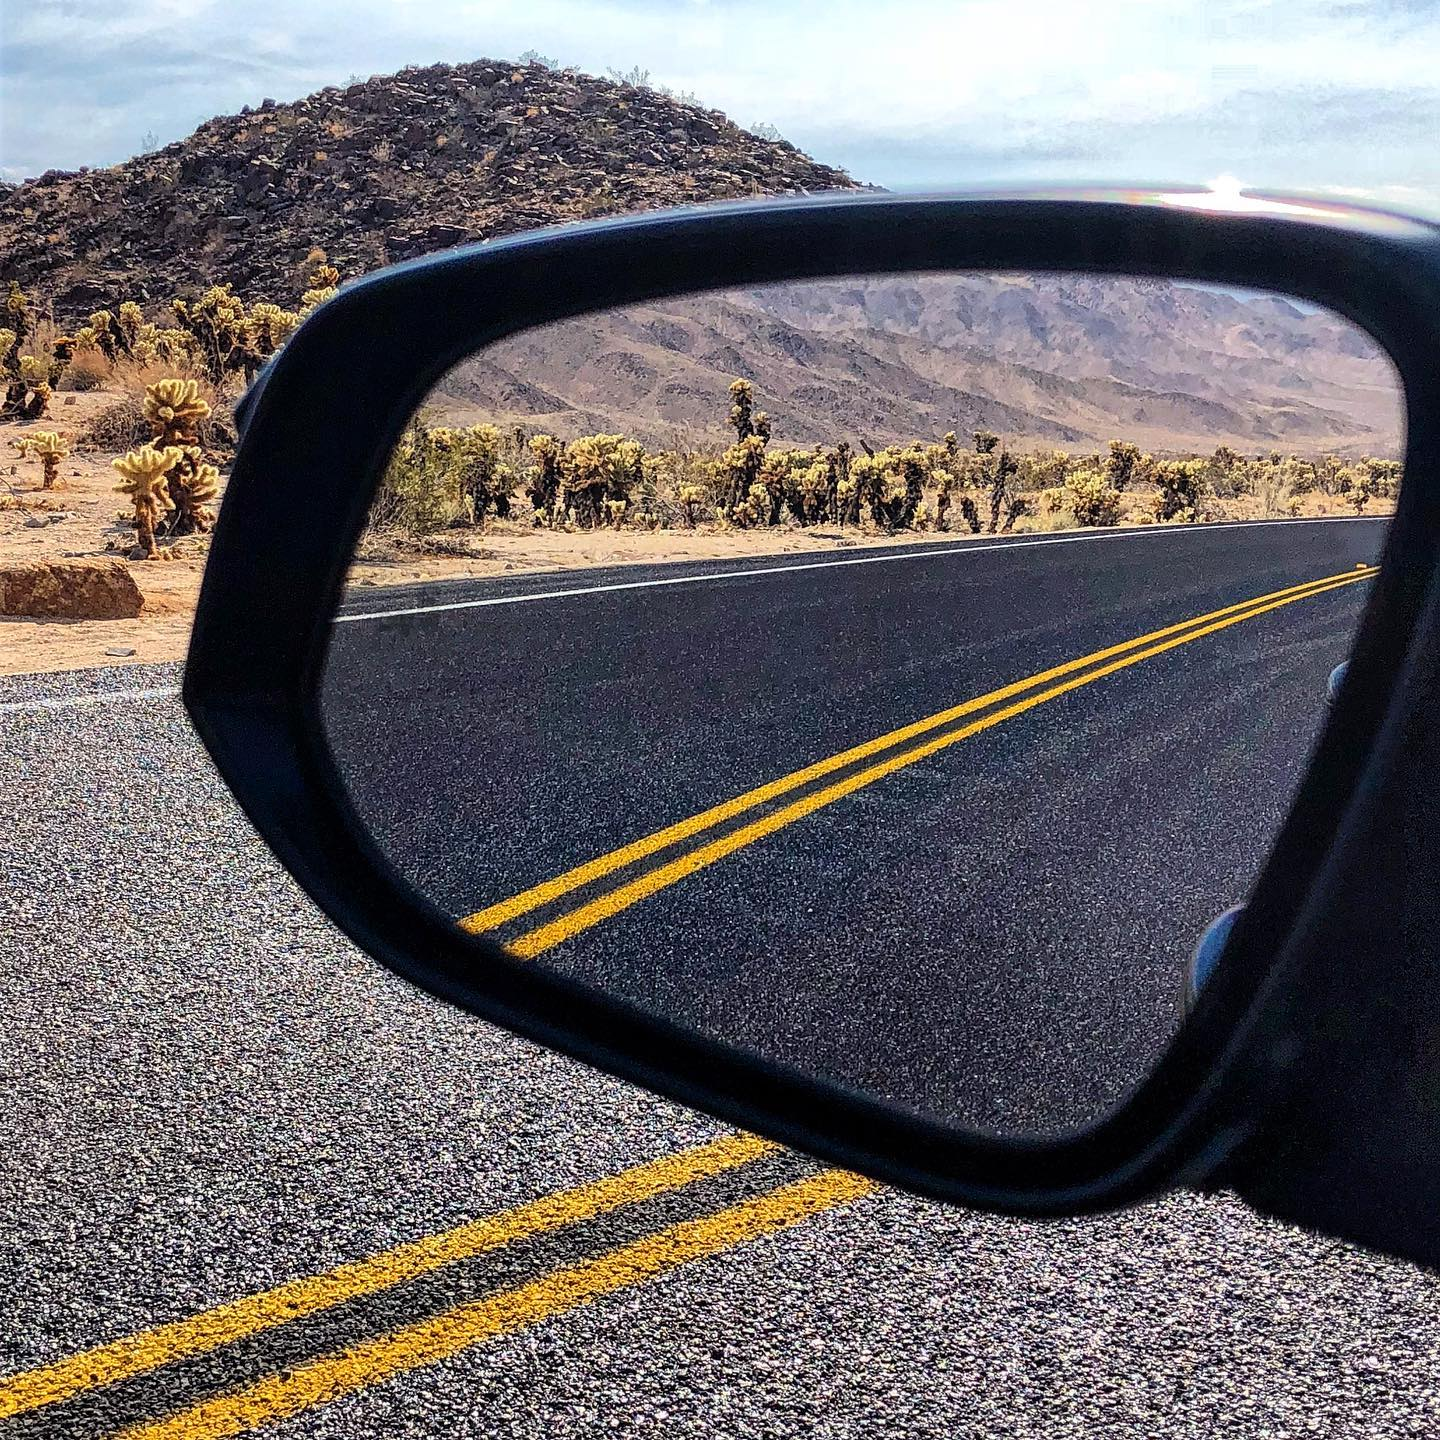 Joshua Tree NP, California Rear mirror view @joshuatreenps  We are more than ready to return to this beautiful place? Which will be your first destination after the travel ban?  #usatravel #usareisen #usatrip #california #californialove #joshuatreenationalpark #jtree #usaliebe #usalove #iloveusa #throwback #passionpassport #view #rearviewmirror #exploreamerica #mojavedesert #desertlandscape #desertlove #desertvibes #desertphotography #visitcalifornia #reisenmachtsüchtig #reiseinspiration #travelinfluencer #travelstoke #traveling #travelcalifornia #travelpics #instatraveling #exploretheworld